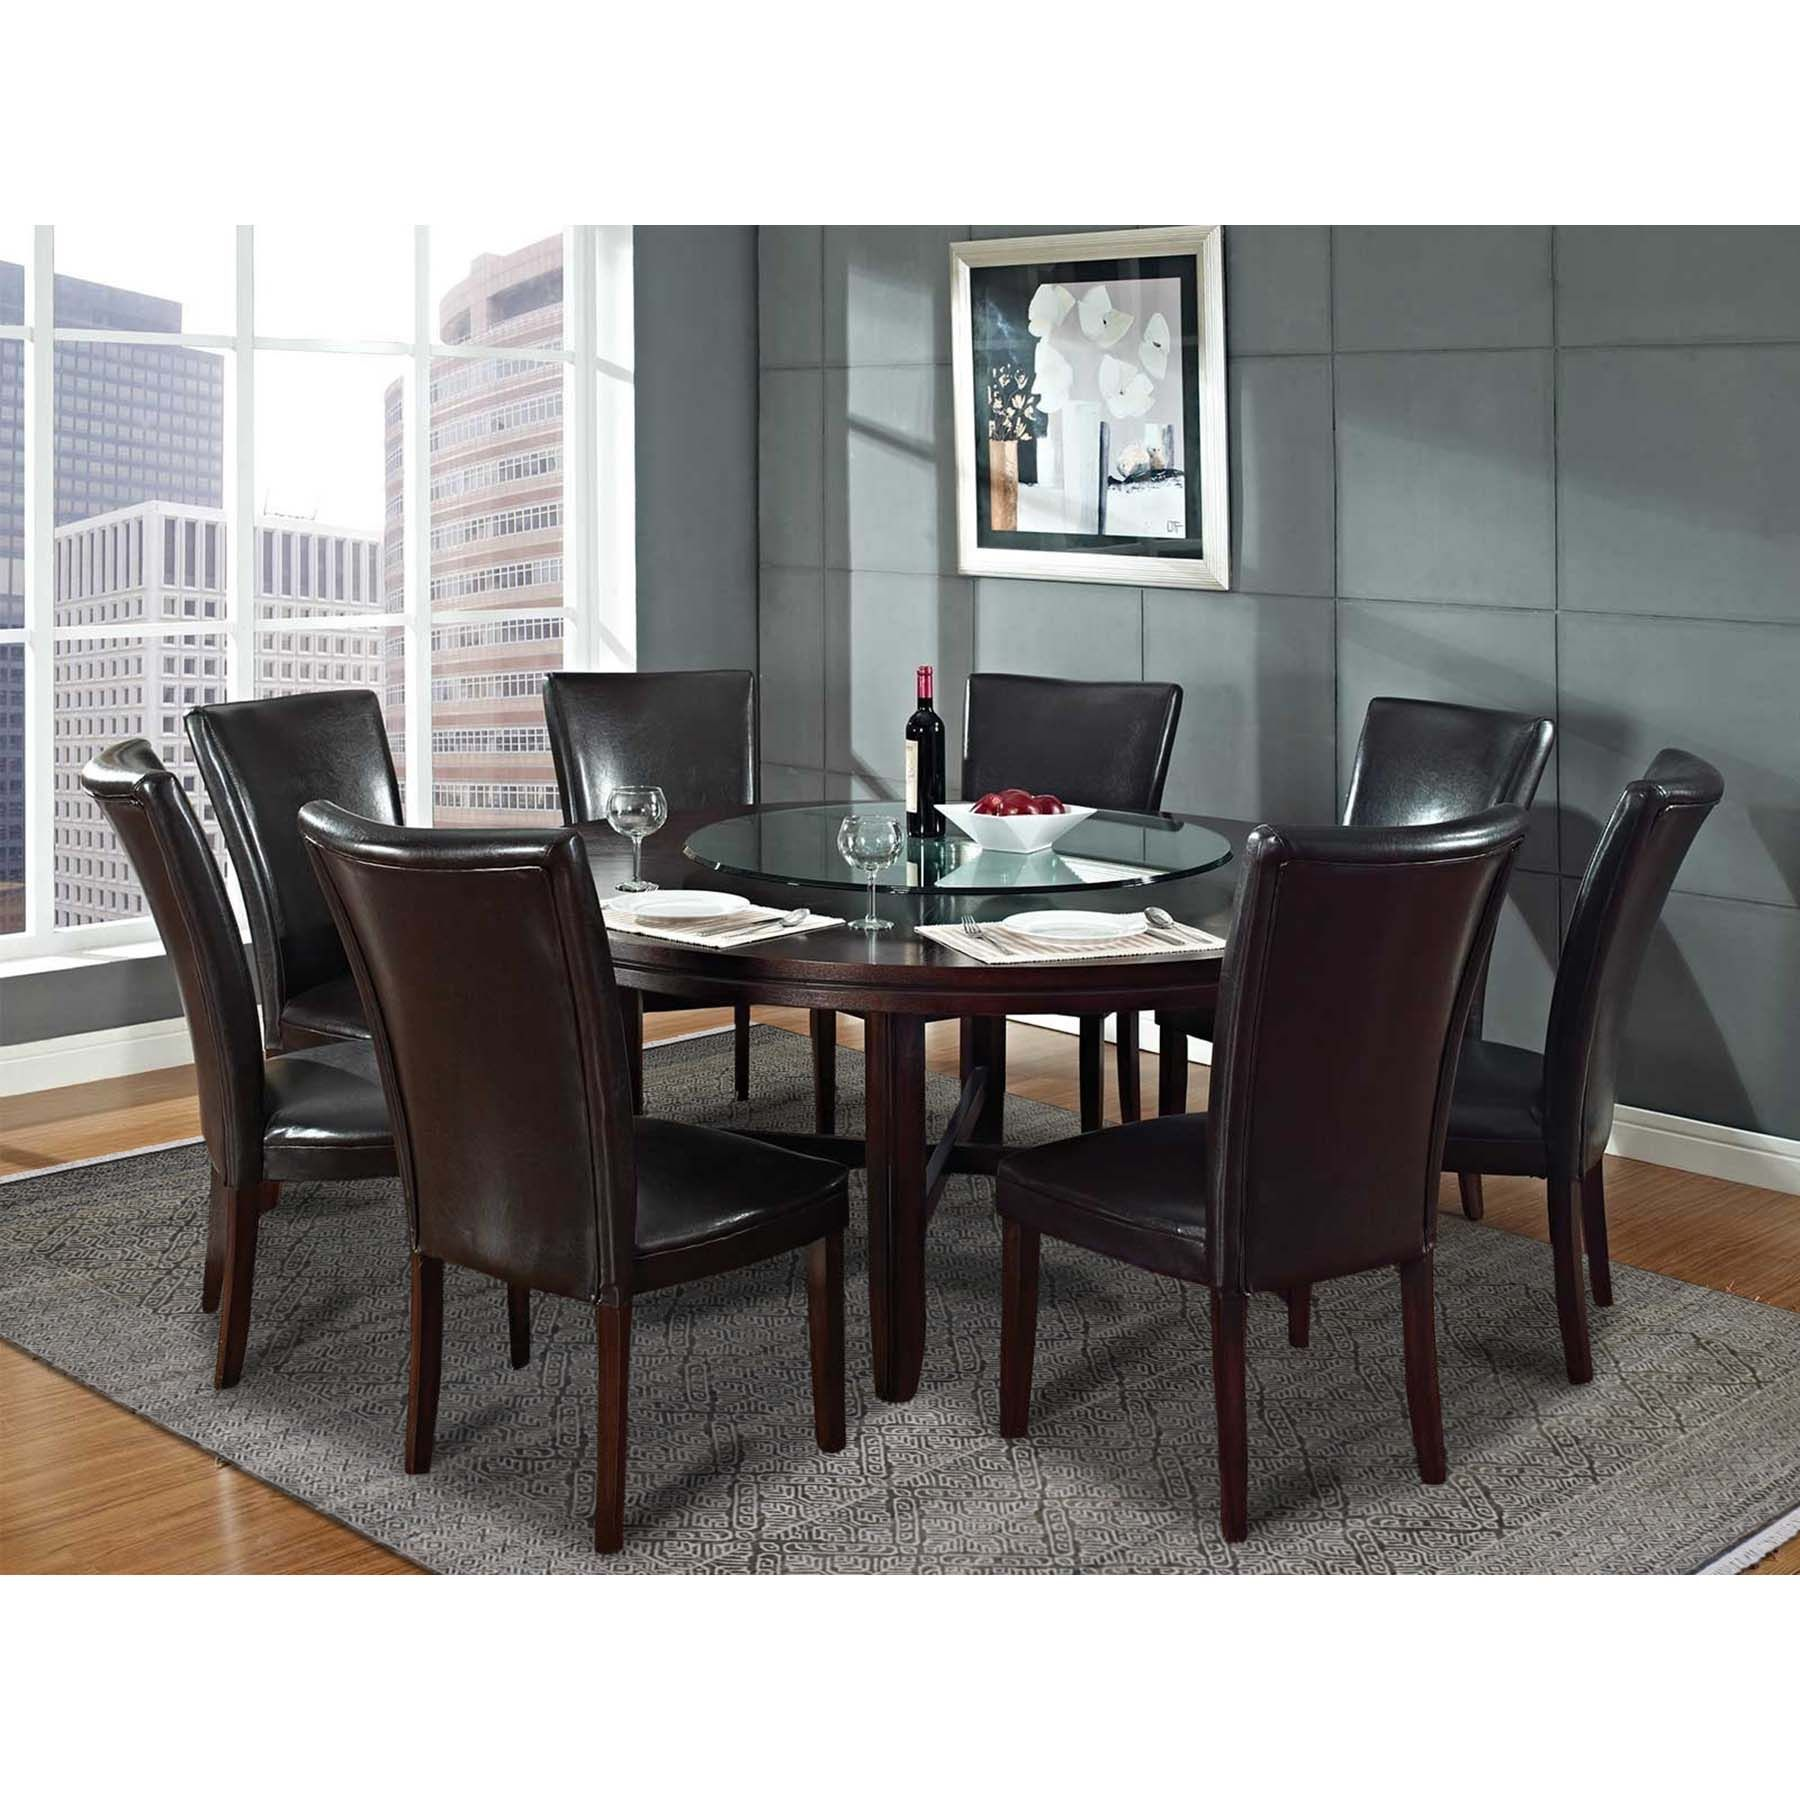 Buy 8 1 X10 1 Dark Green On Clearance Tone On Tone Gabbeh Hand Knotted Pure Wool Ori With Images Round Dining Room Sets 72 Inch Round Dining Table Round Dining Table Sets